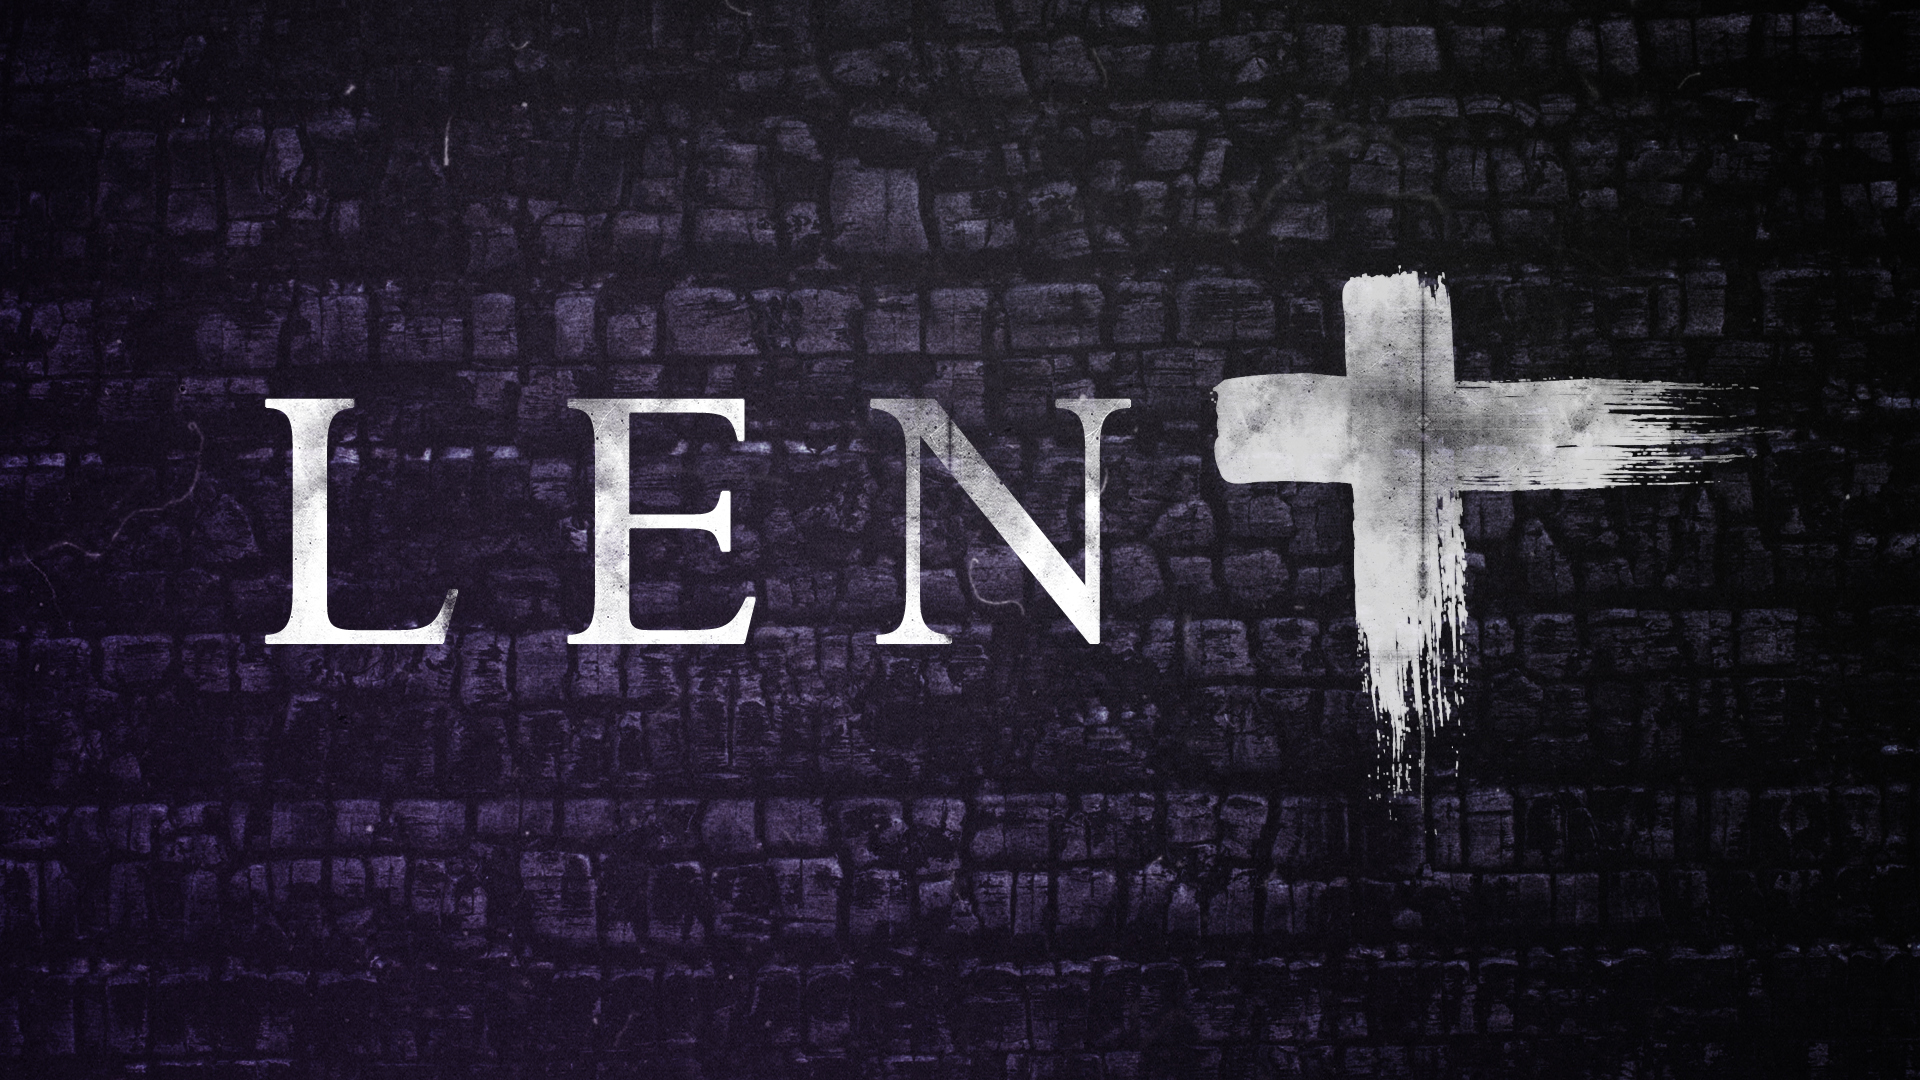 Lent of good intentions spiritual disciplines and christian freedom the heidelblog - Wallpaper for lent season ...